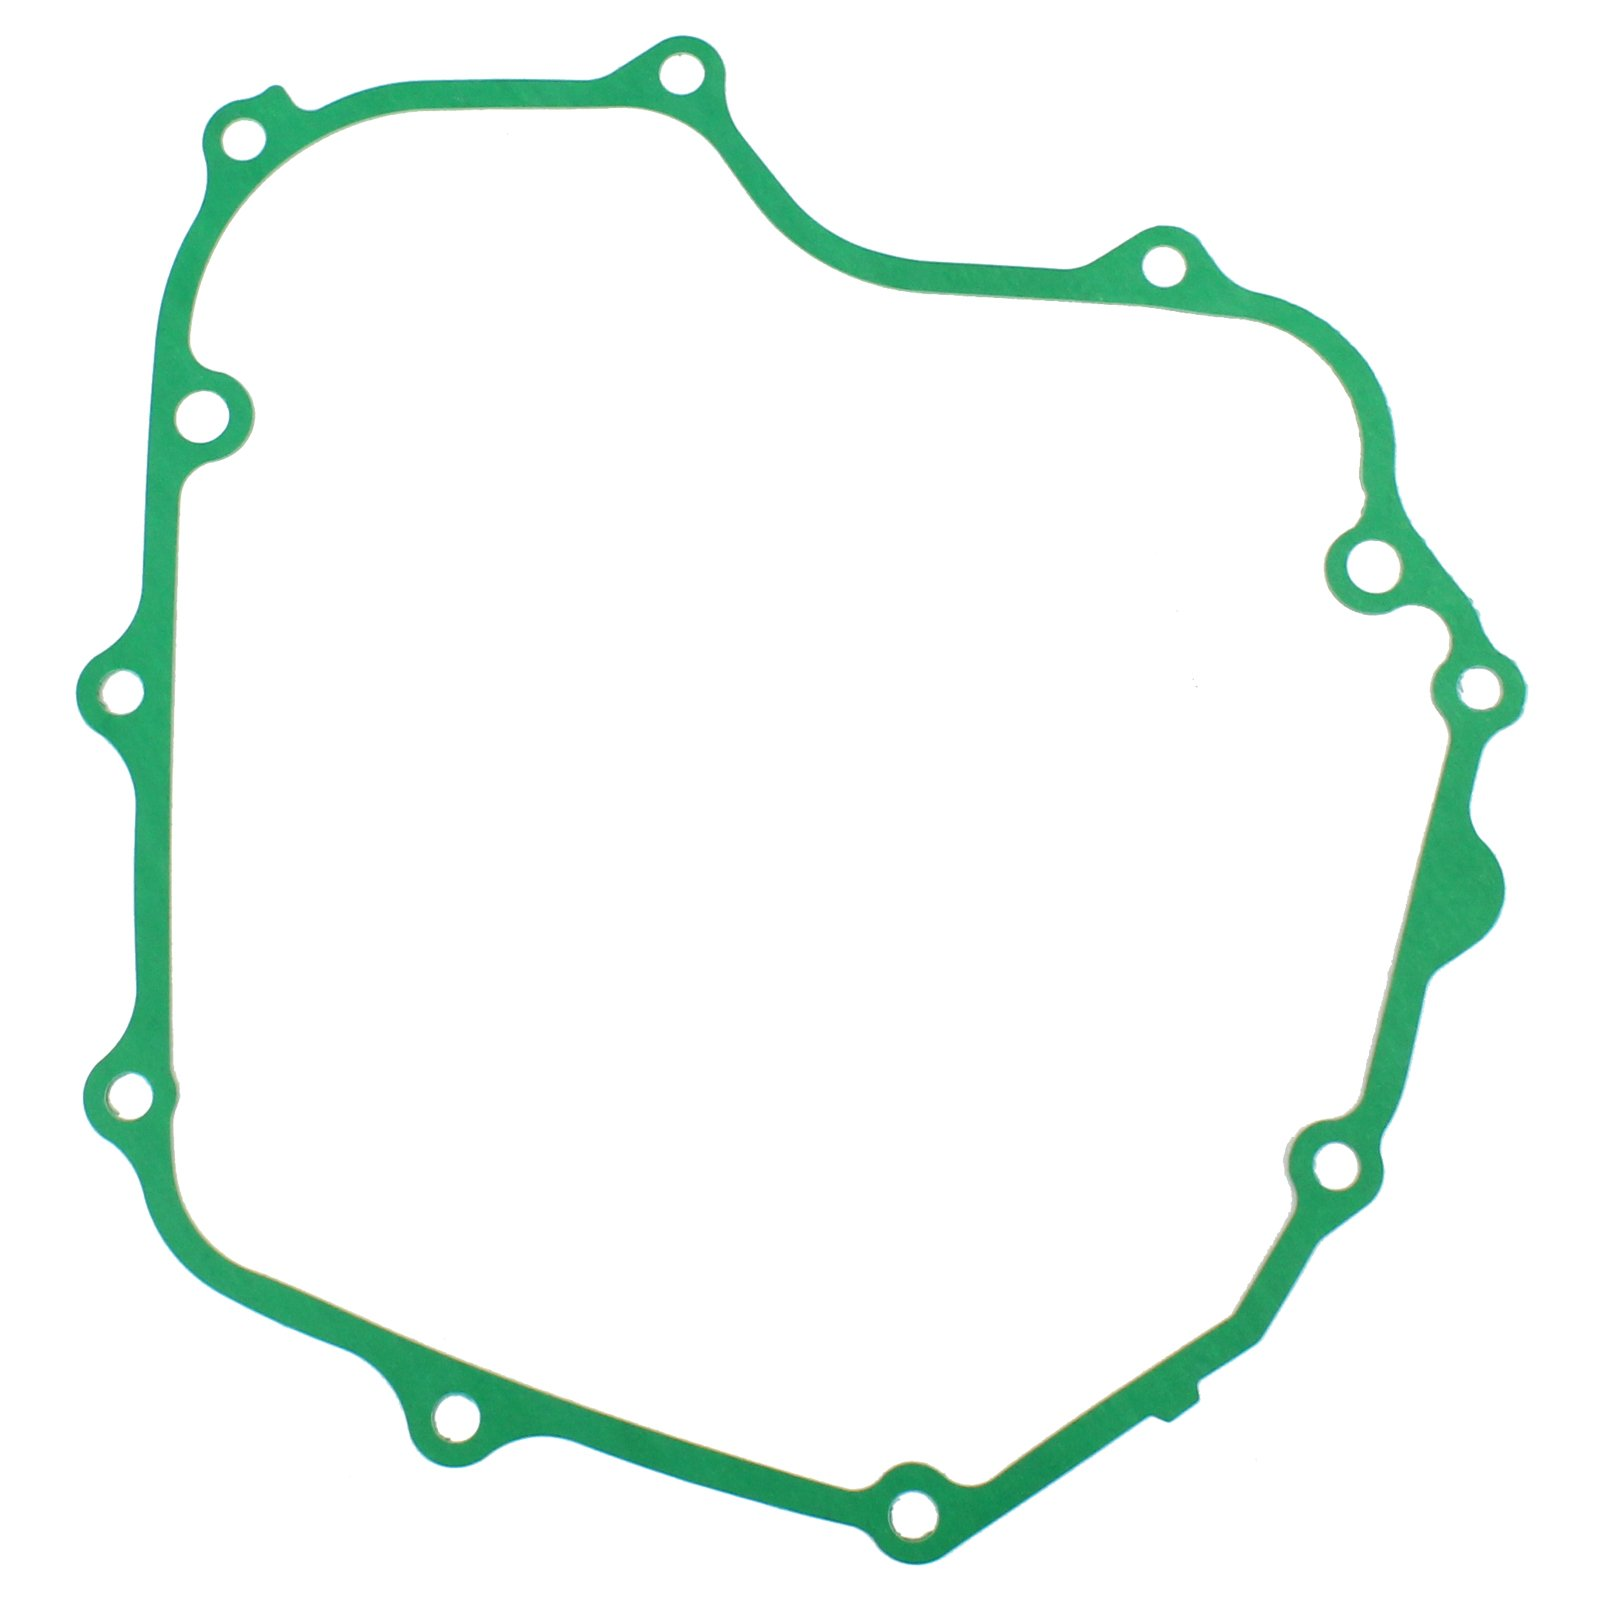 CALTRIC CLUTCH COVER GASKET Fits KAWASAKI 11009-1569, 11009-1872